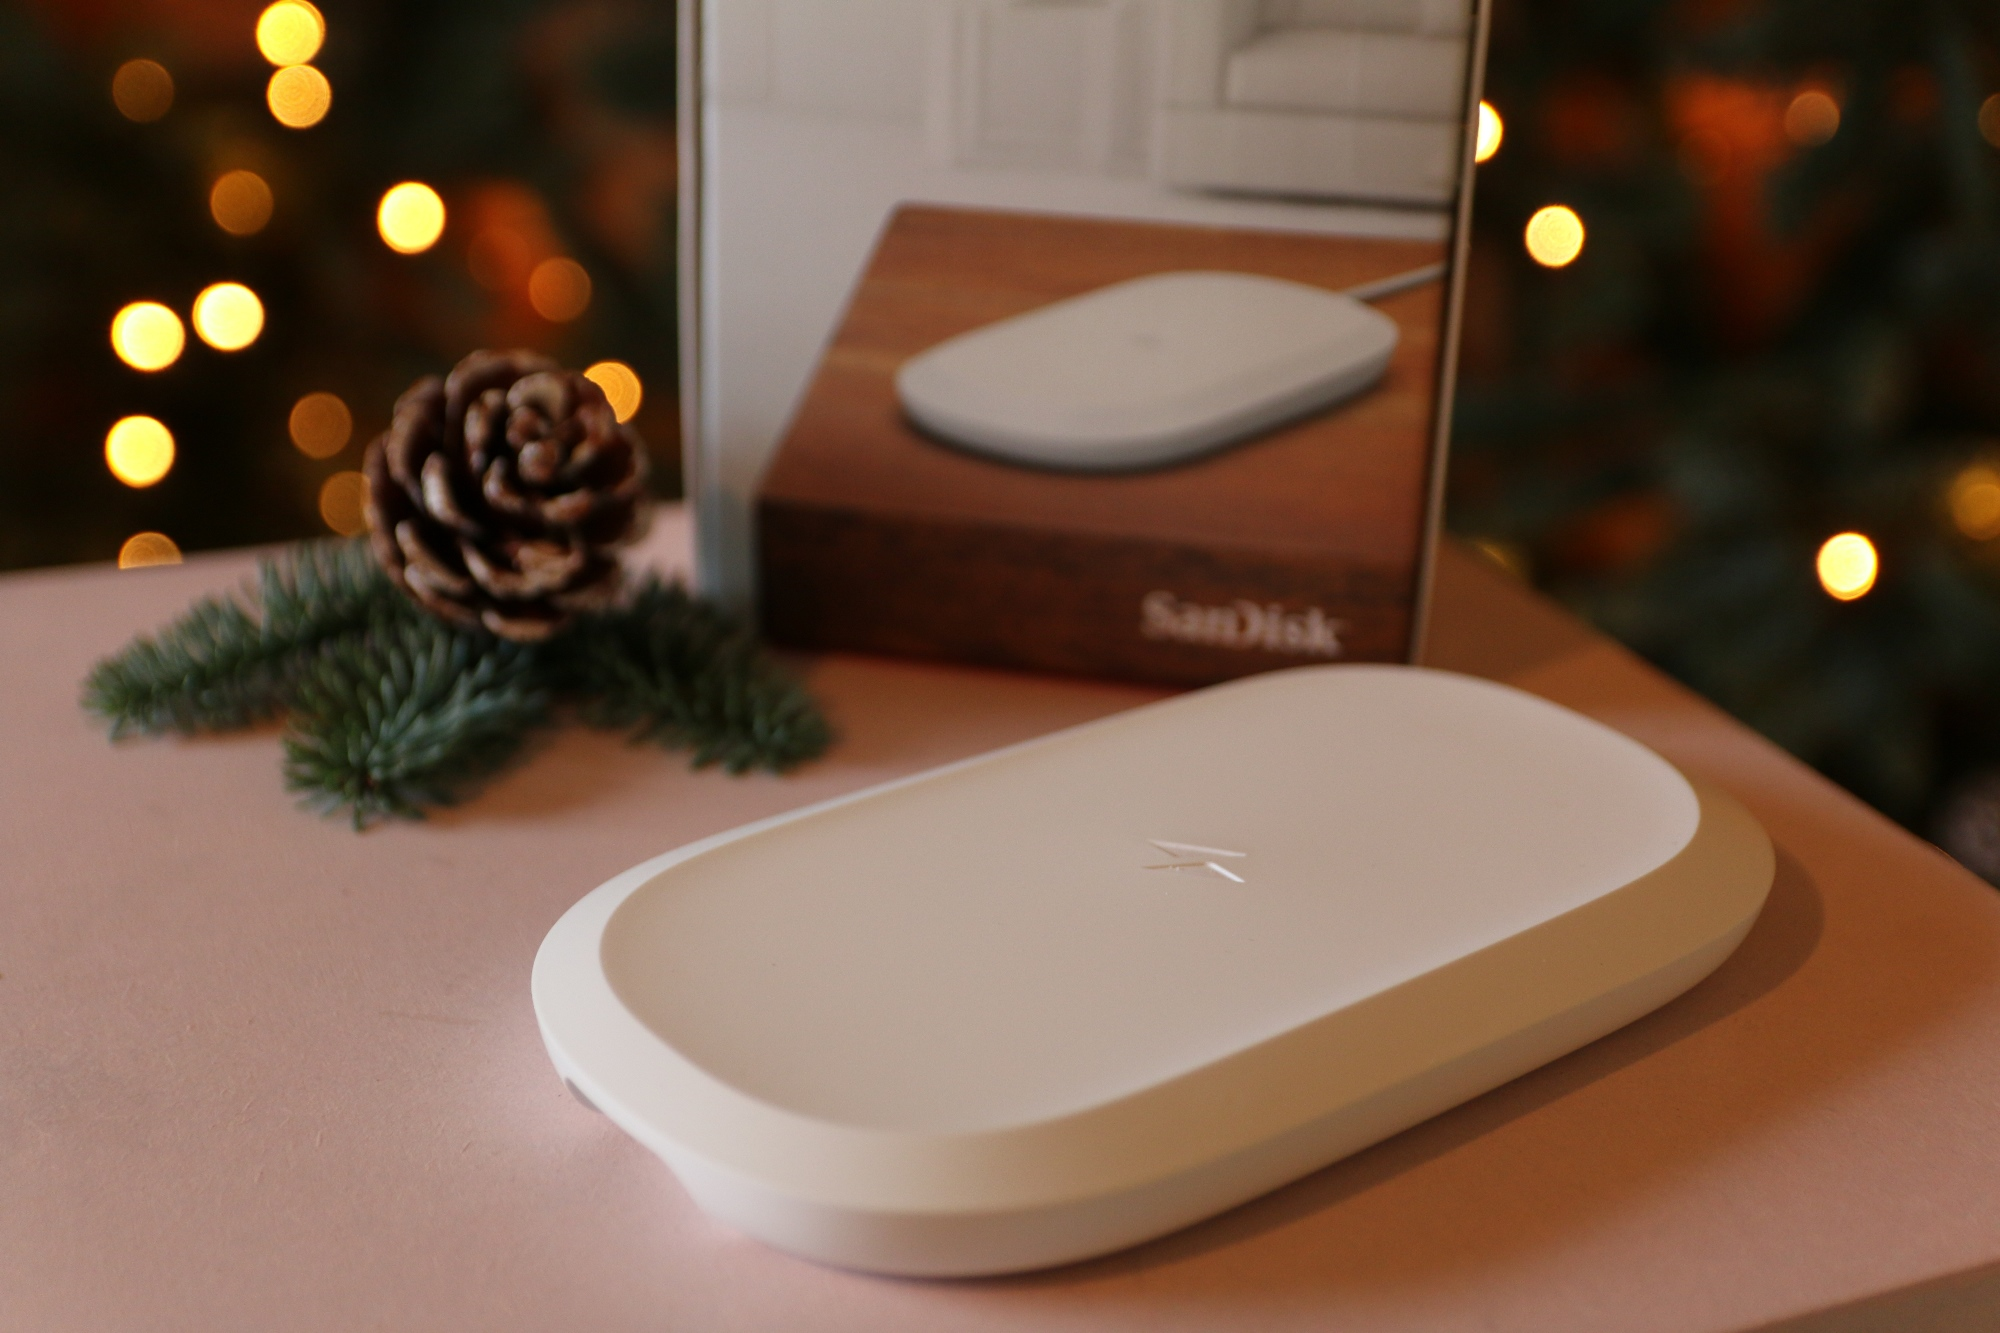 sandisk-ixpand-wireless-charger